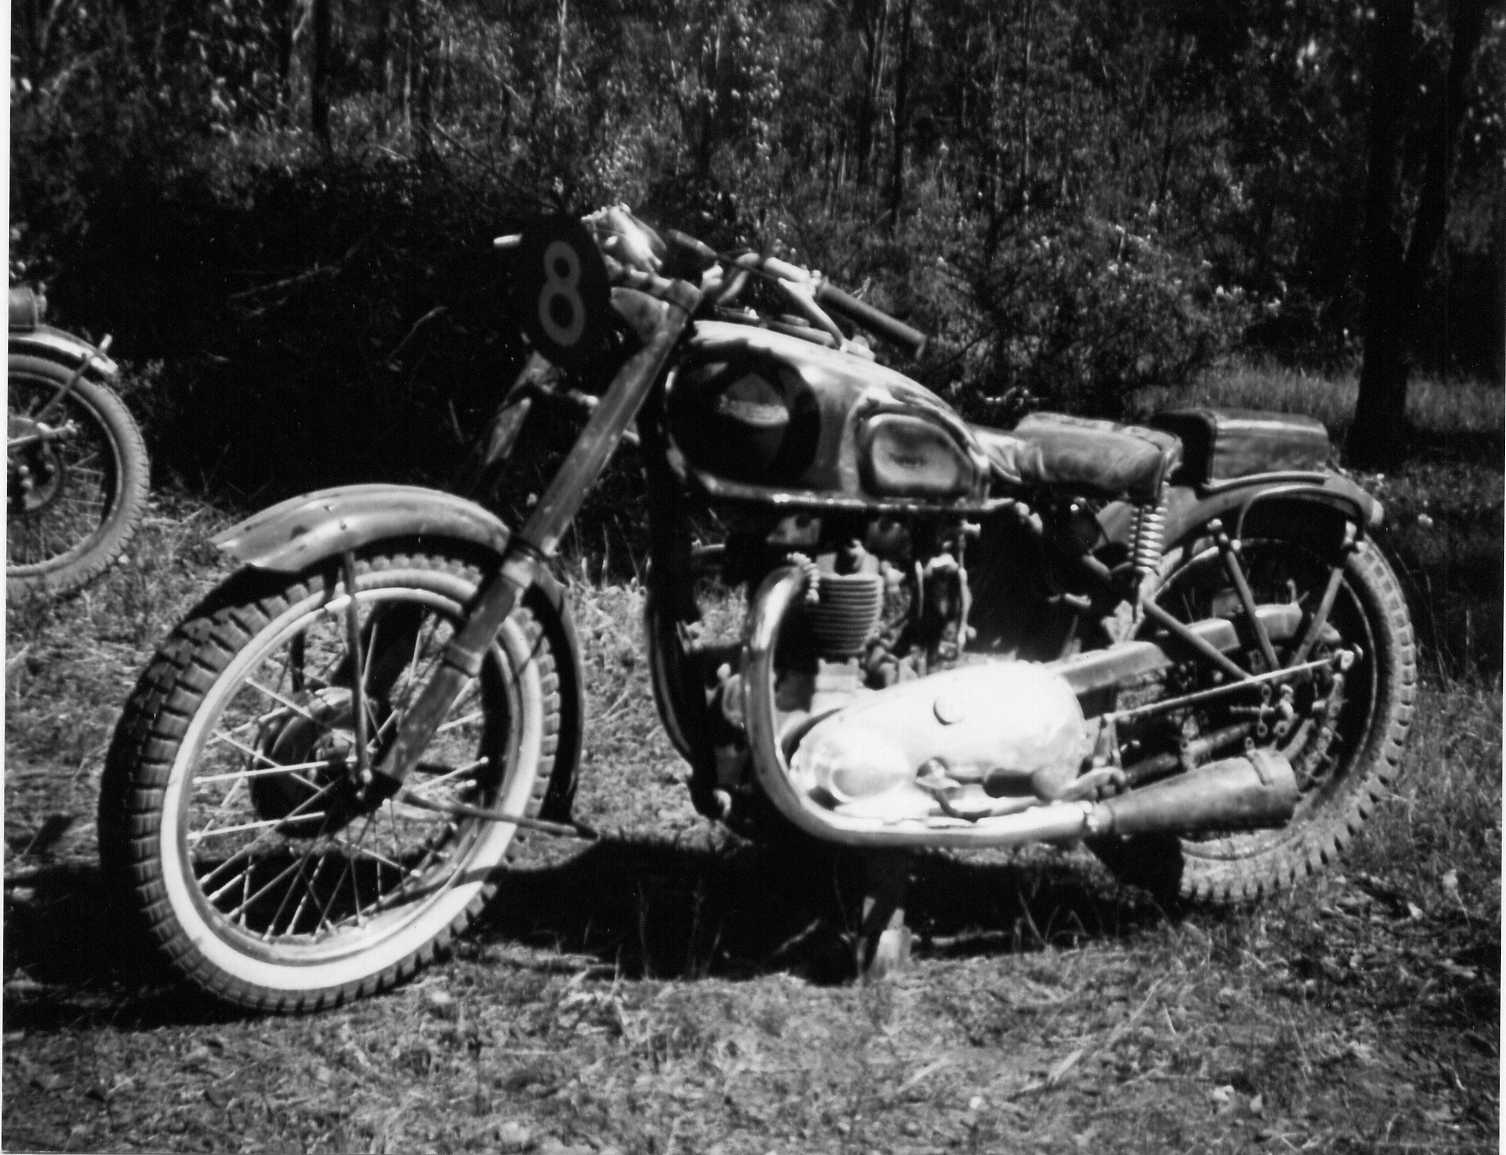 [(2)+++1946+500cc.+Speed+Twin+Triumph.+The+first+bike+I+e+(1).jpg]